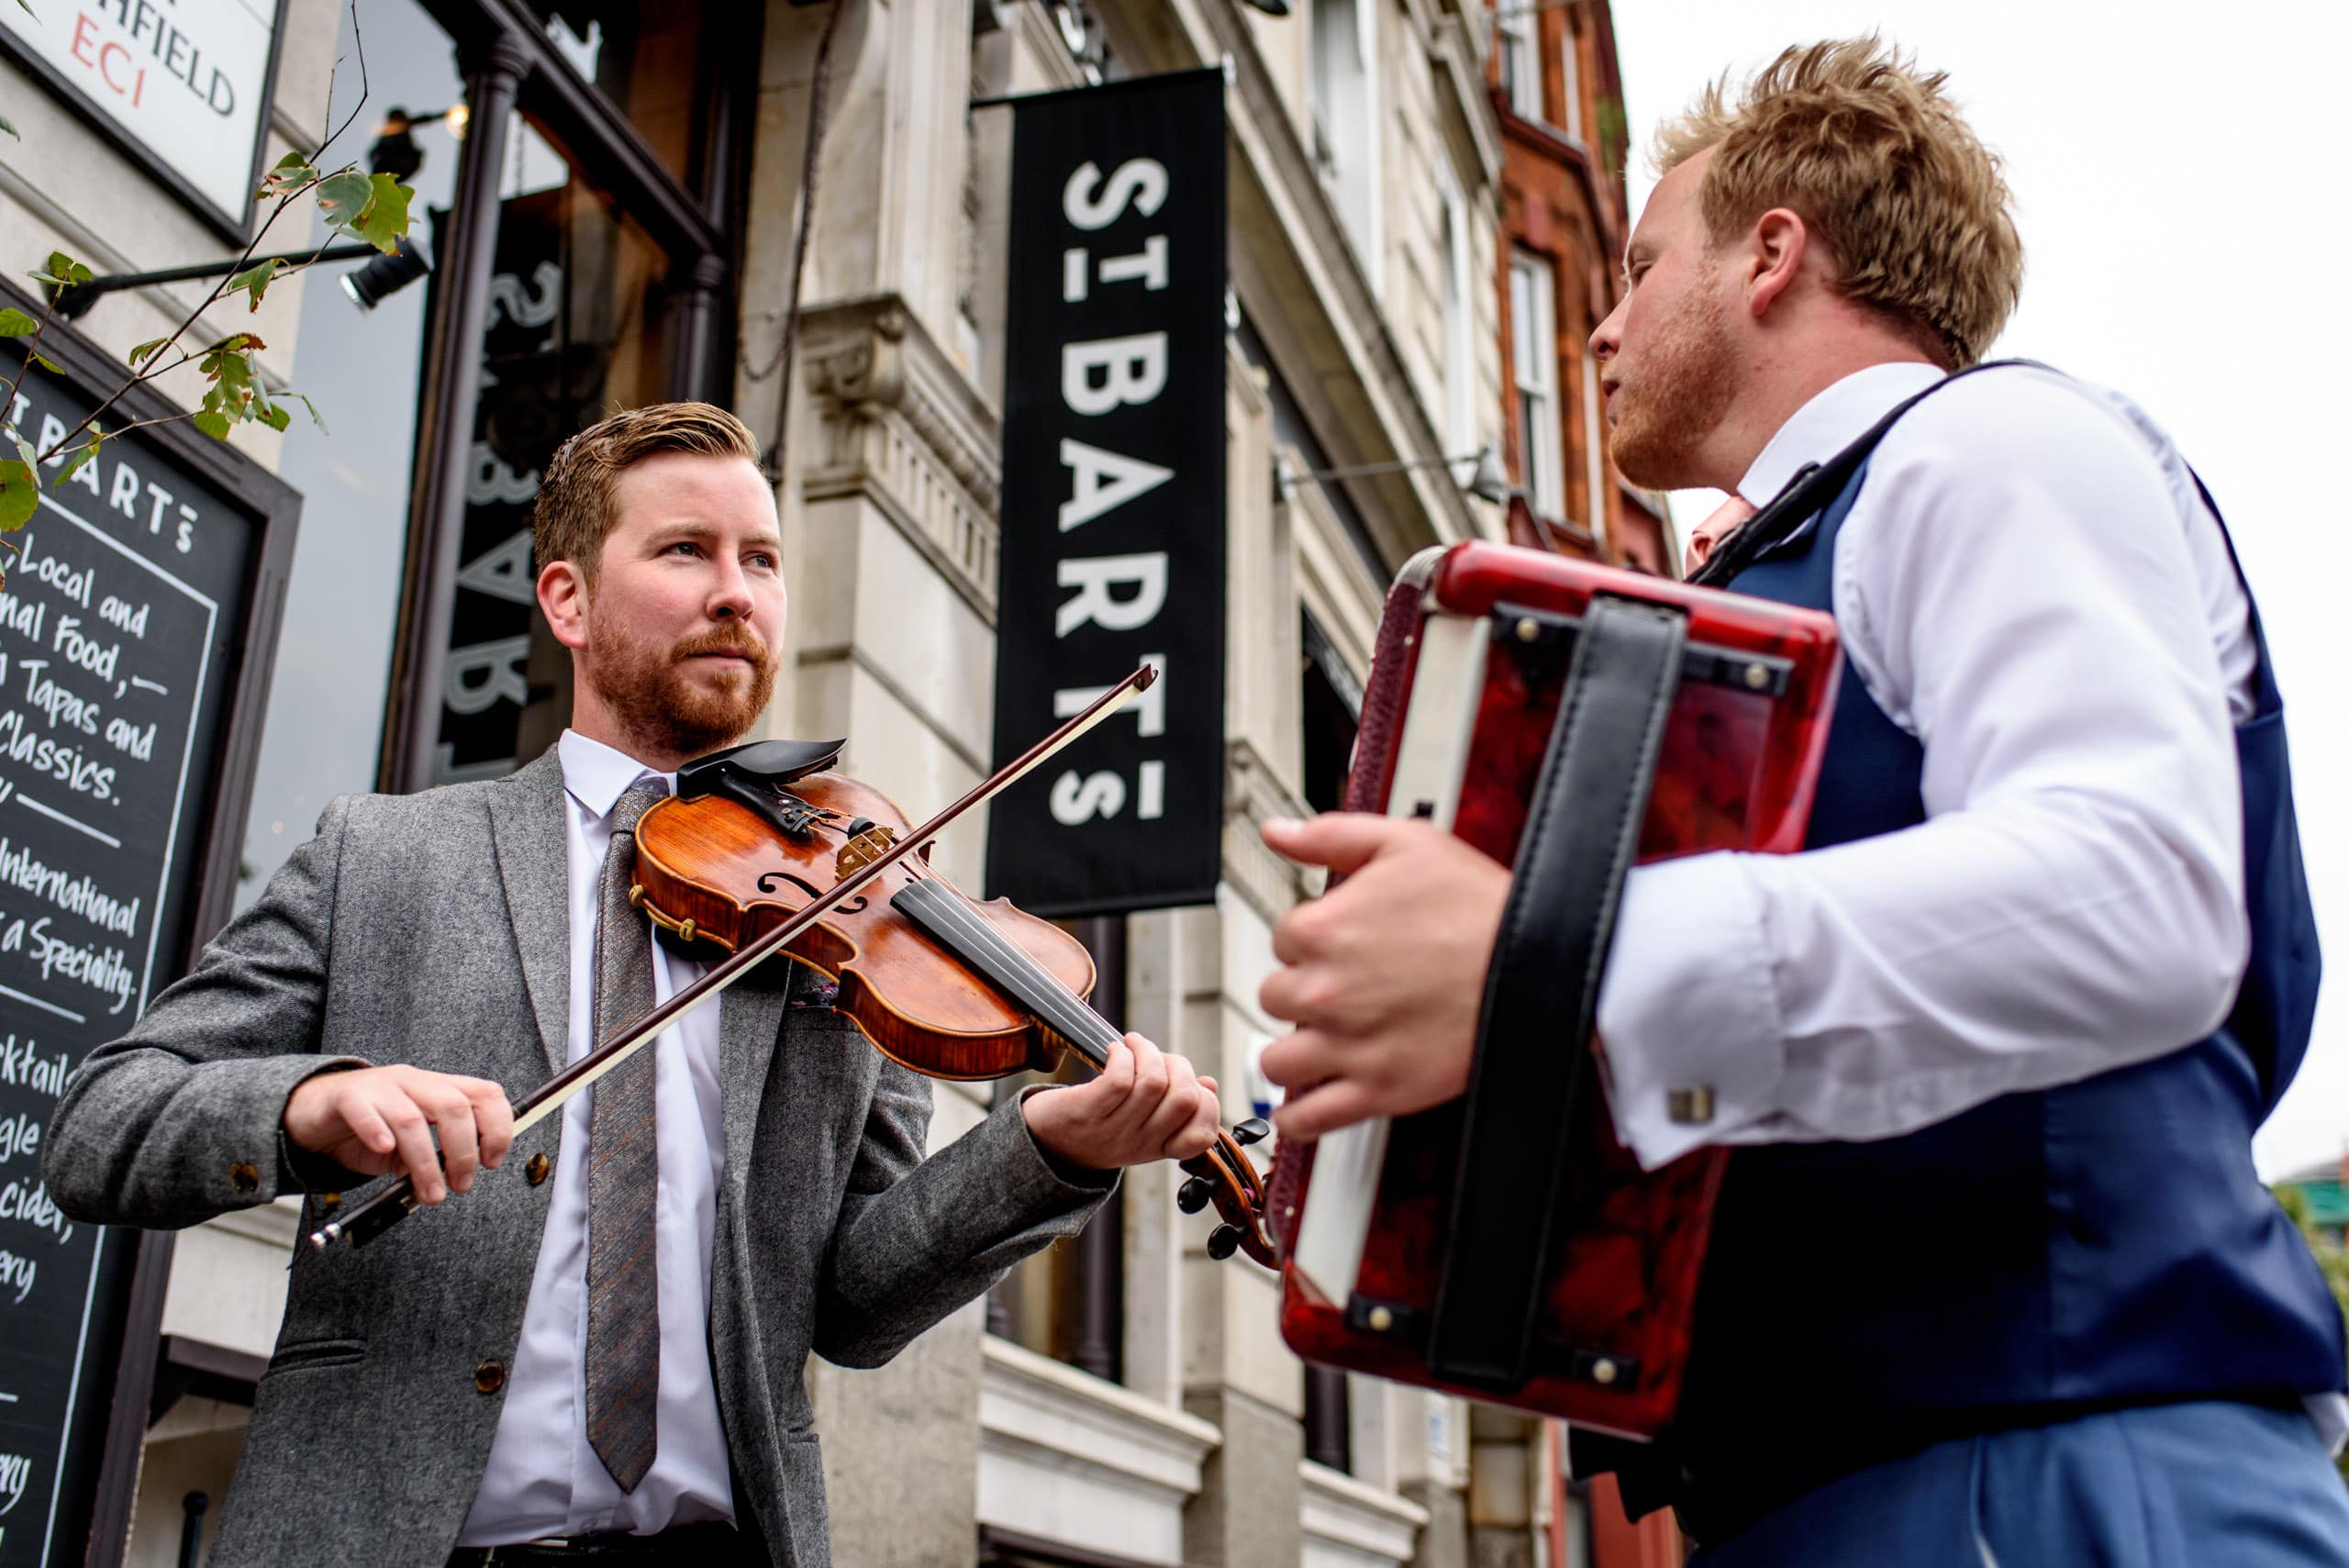 Wedding musicians playing outside St. Barts Brewery in London